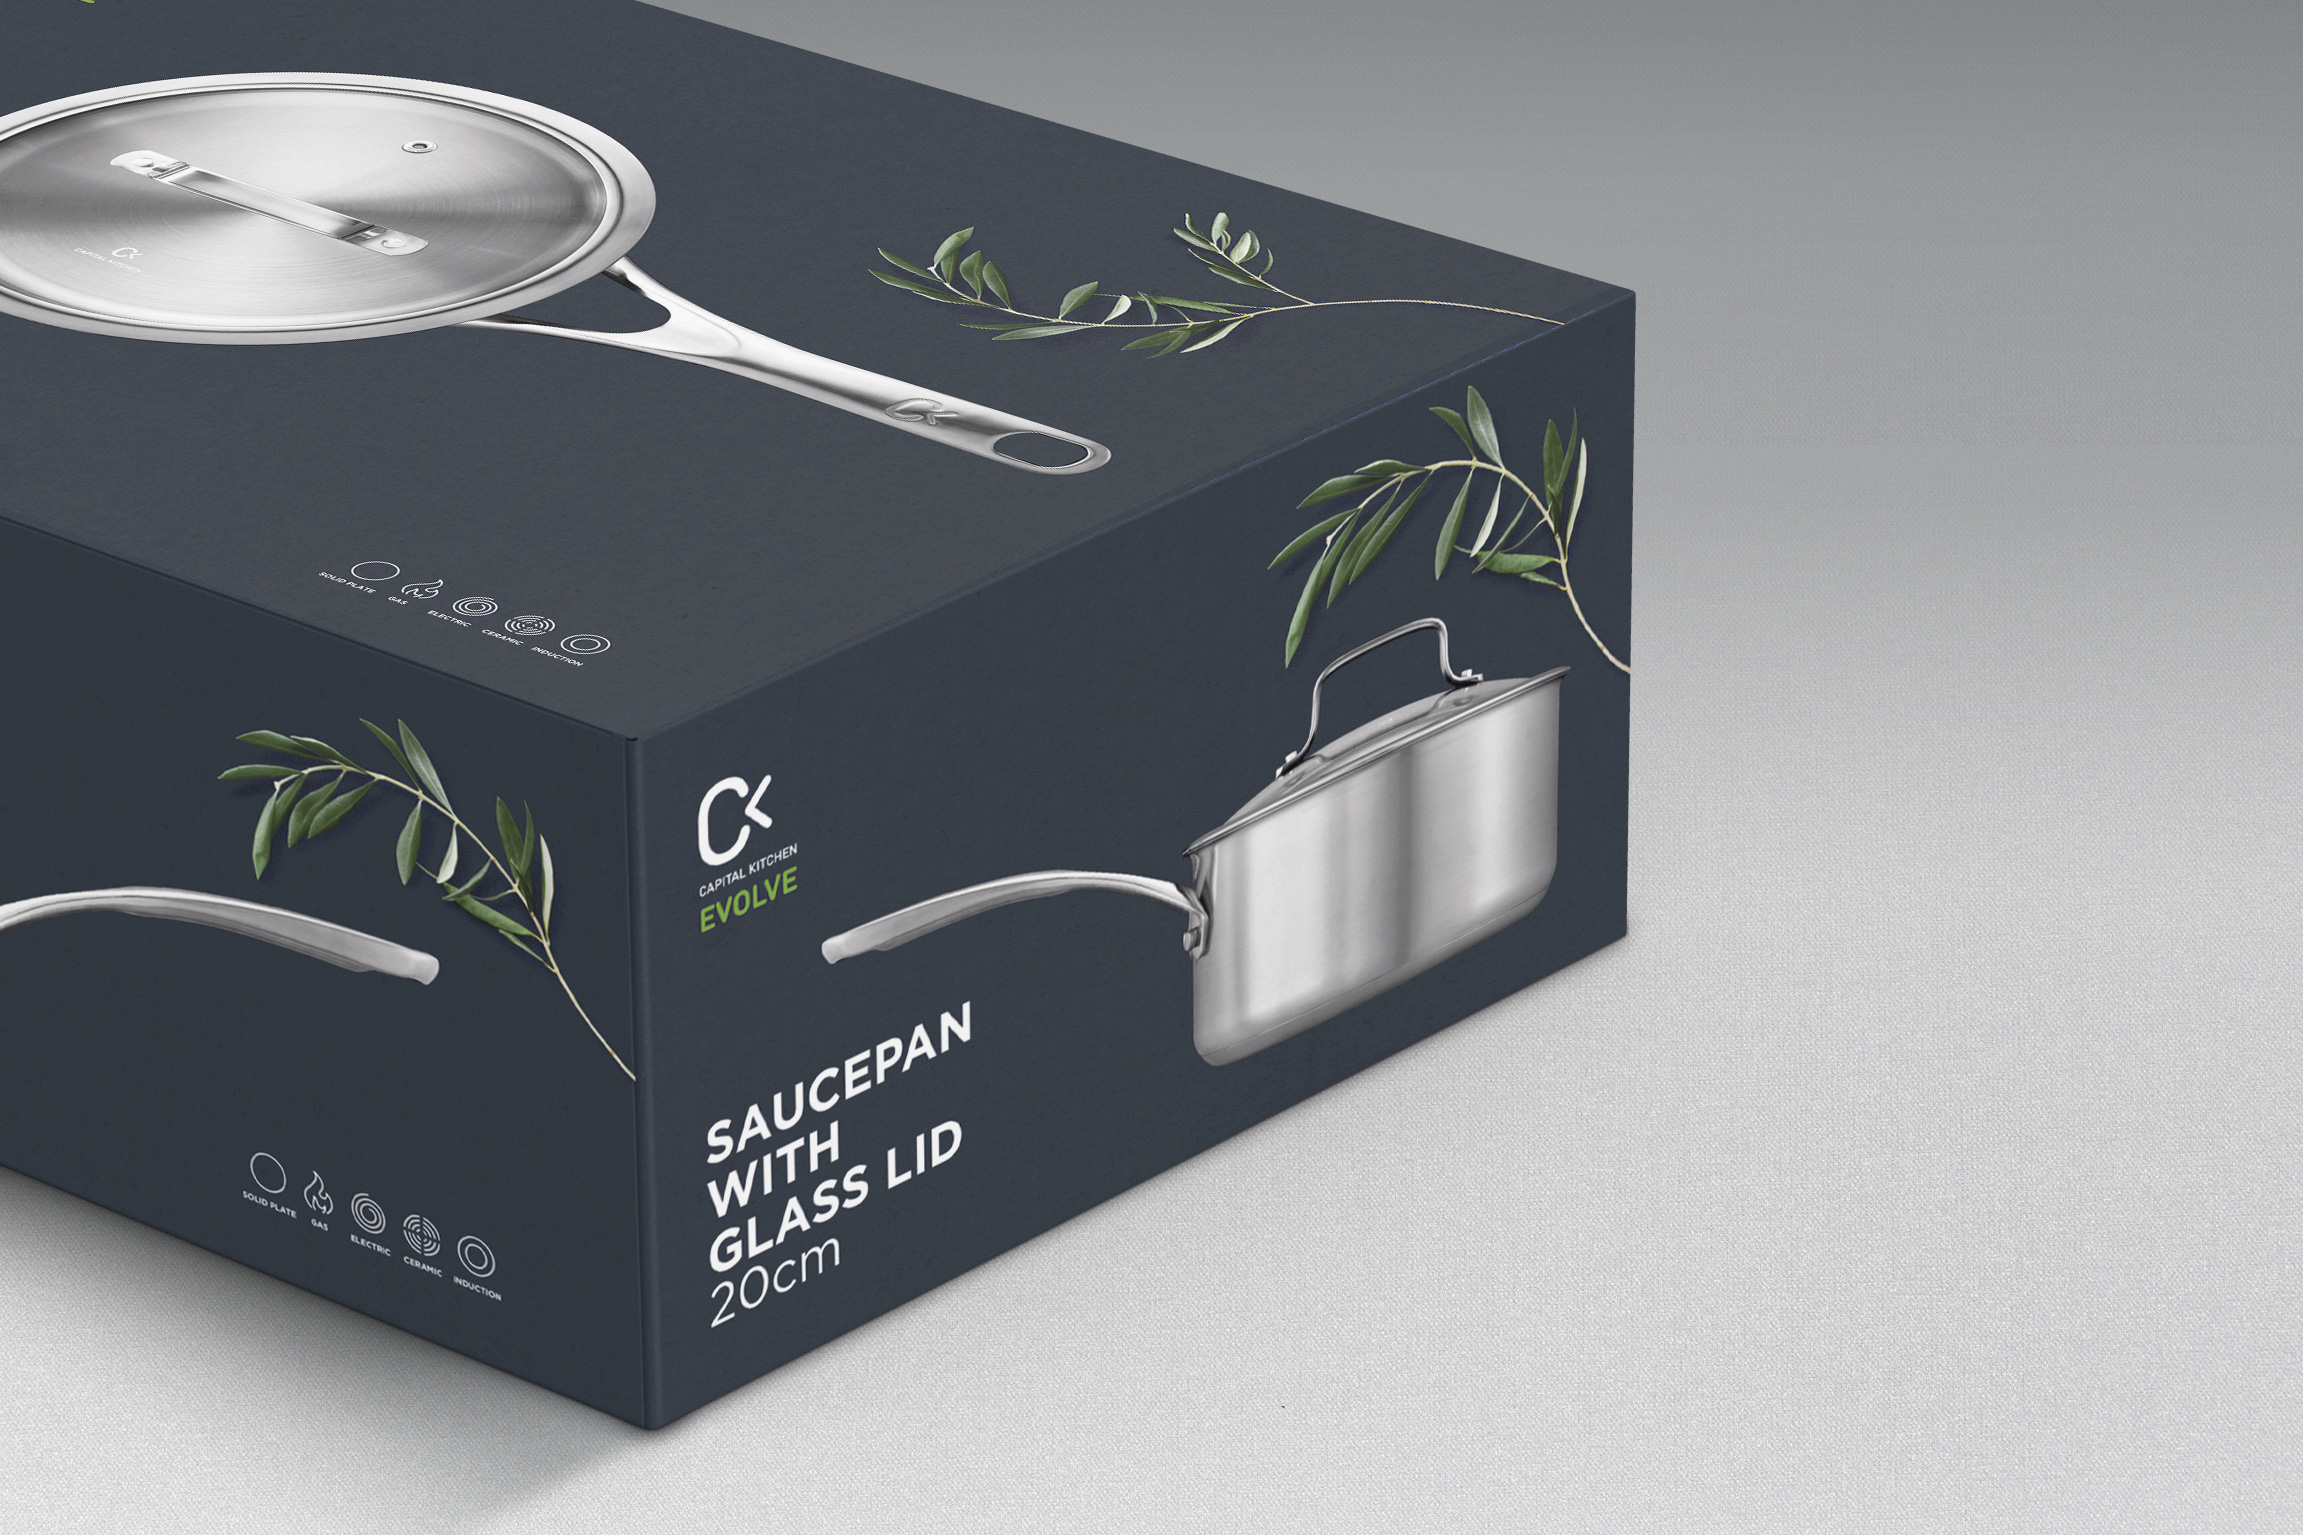 NEW-ZEALAND-PACKAGING-STEVENS-001